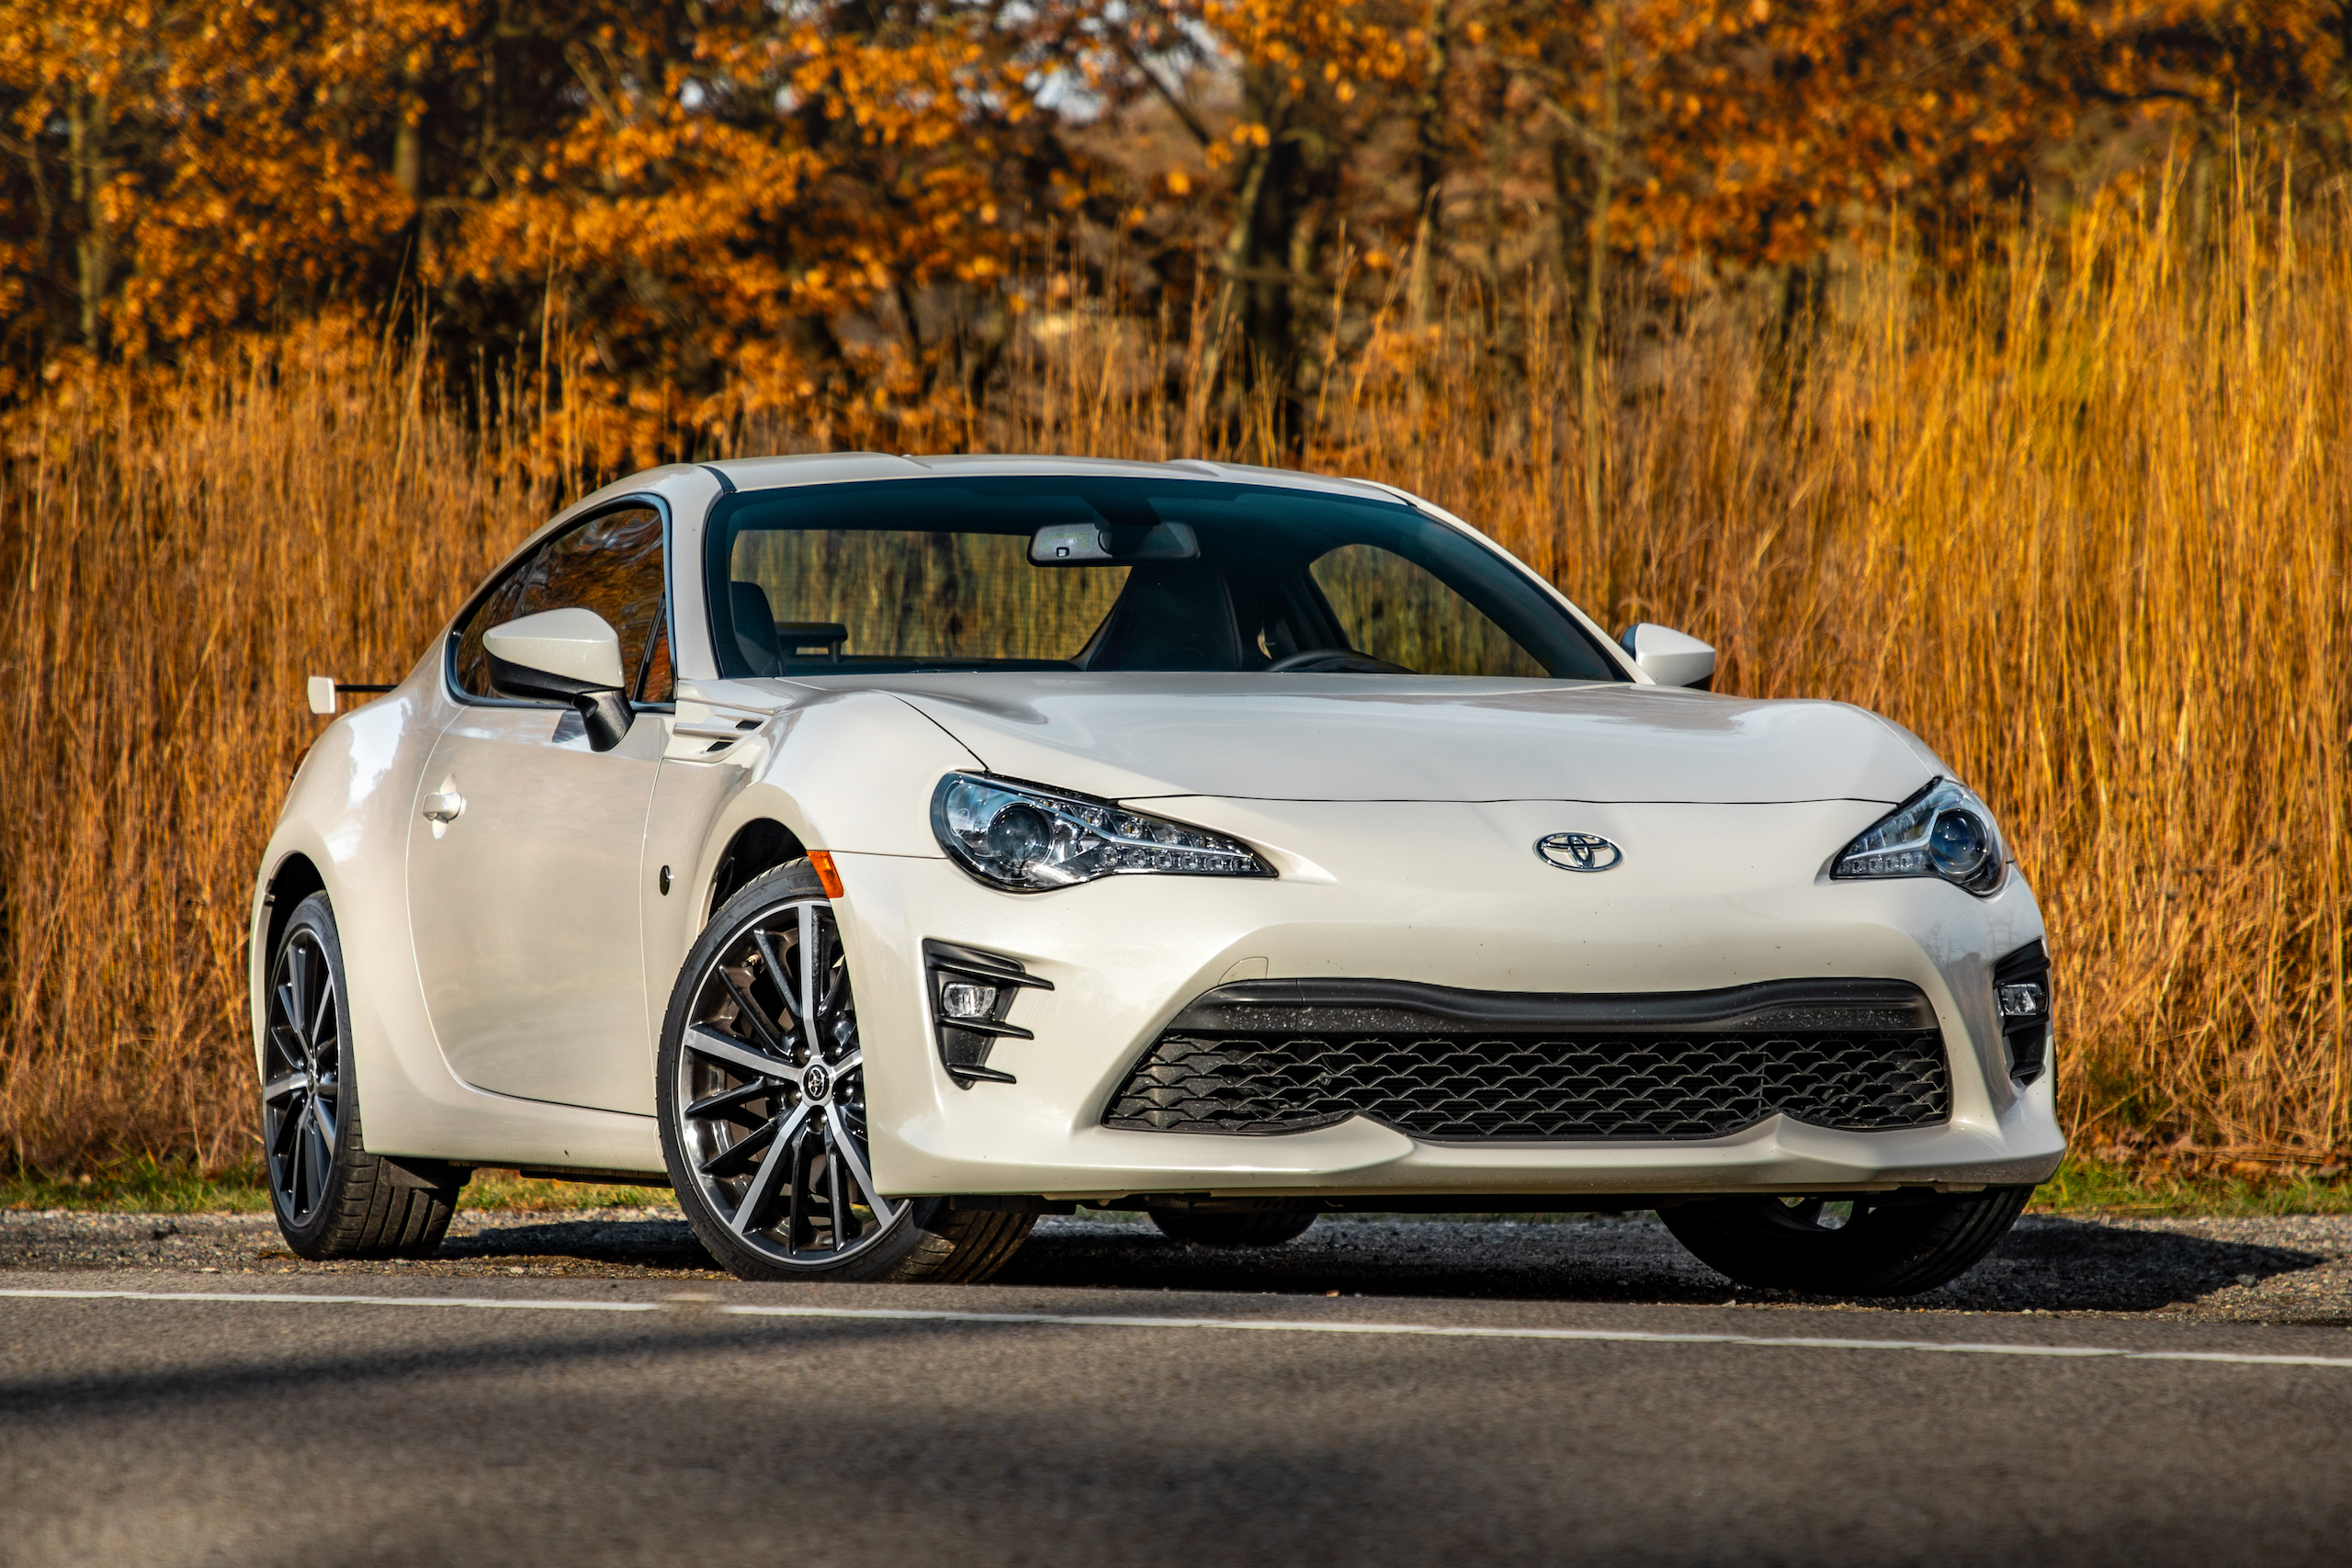 2020 Toyota 86 GT front three-quarter